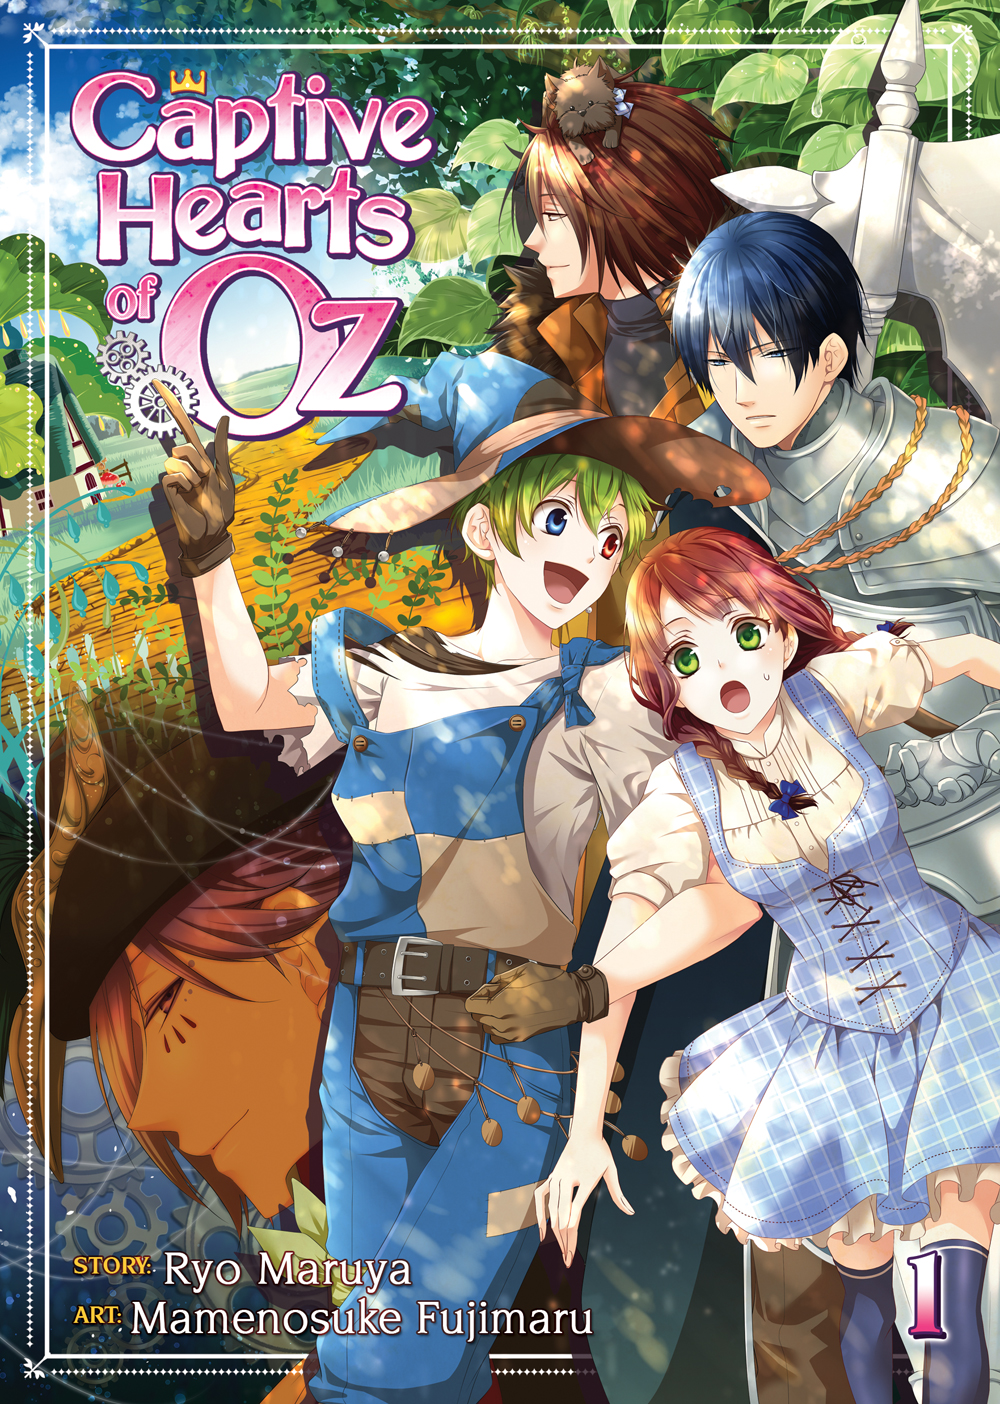 Captive Hearts of Oz Manga Volume 1